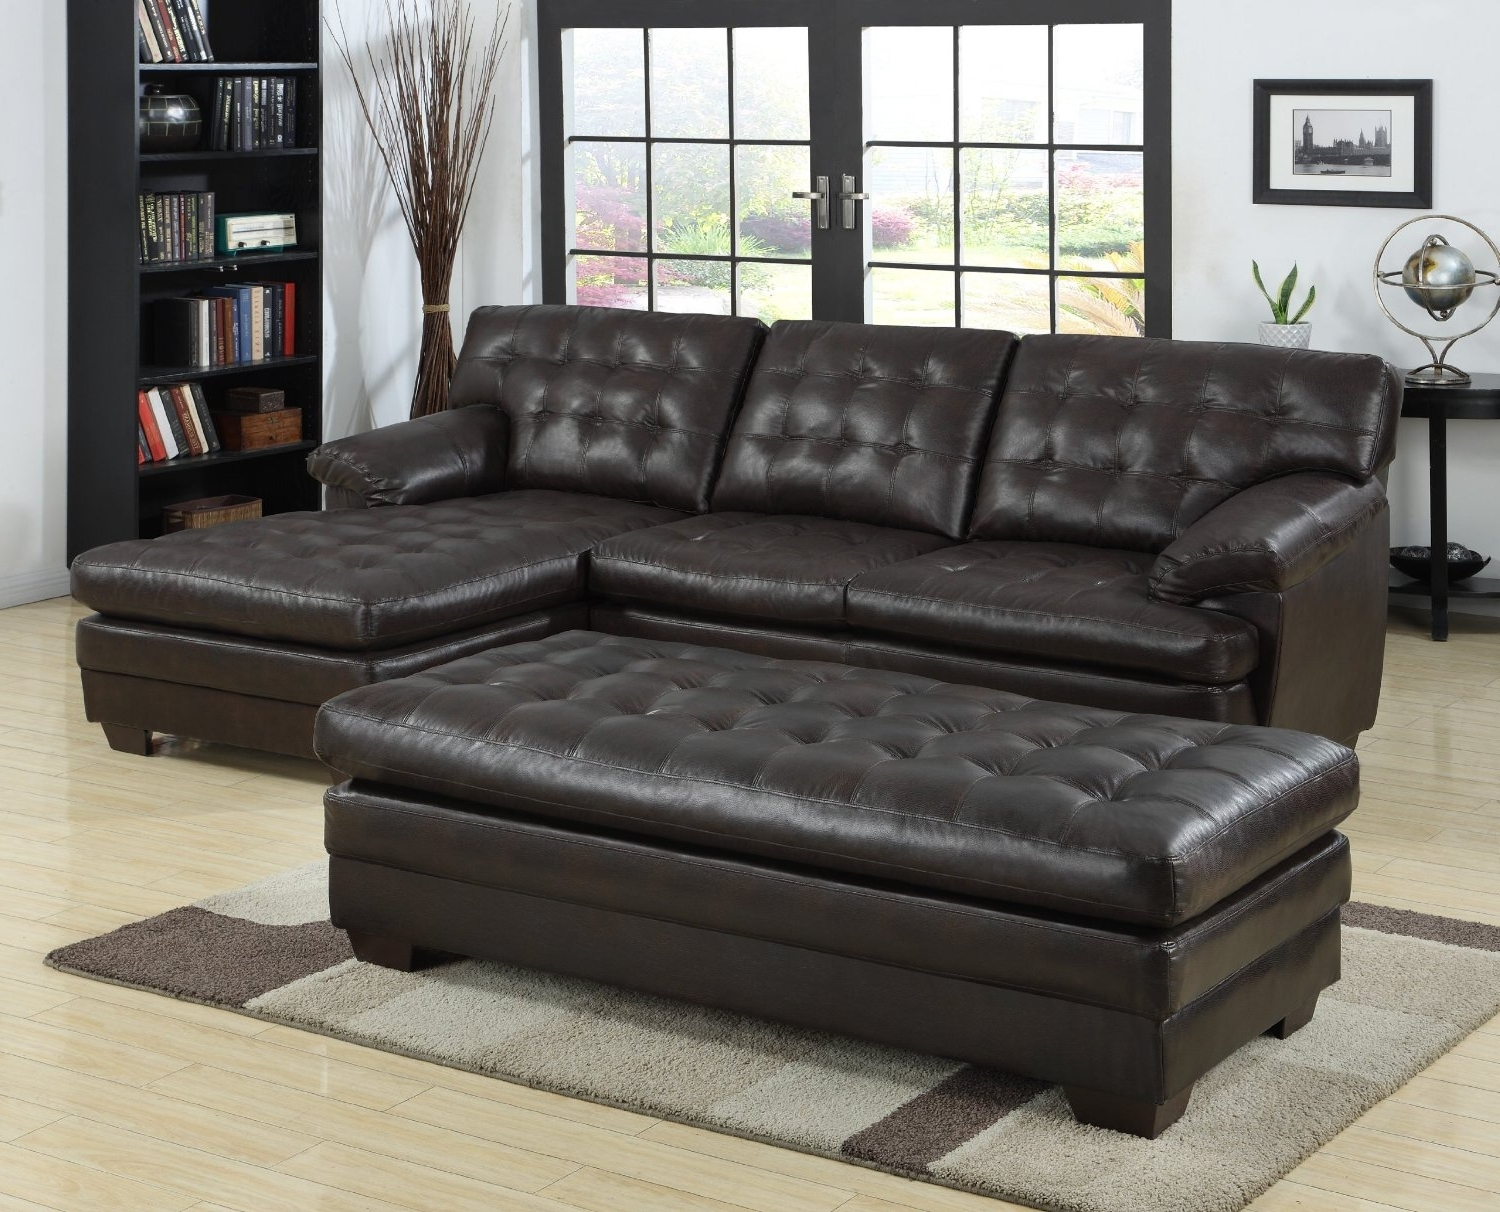 Tufted Leather Chaises With Most Popular Black Tufted Leather Sectional Sofa With Chaise And Bench Seat (View 11 of 15)